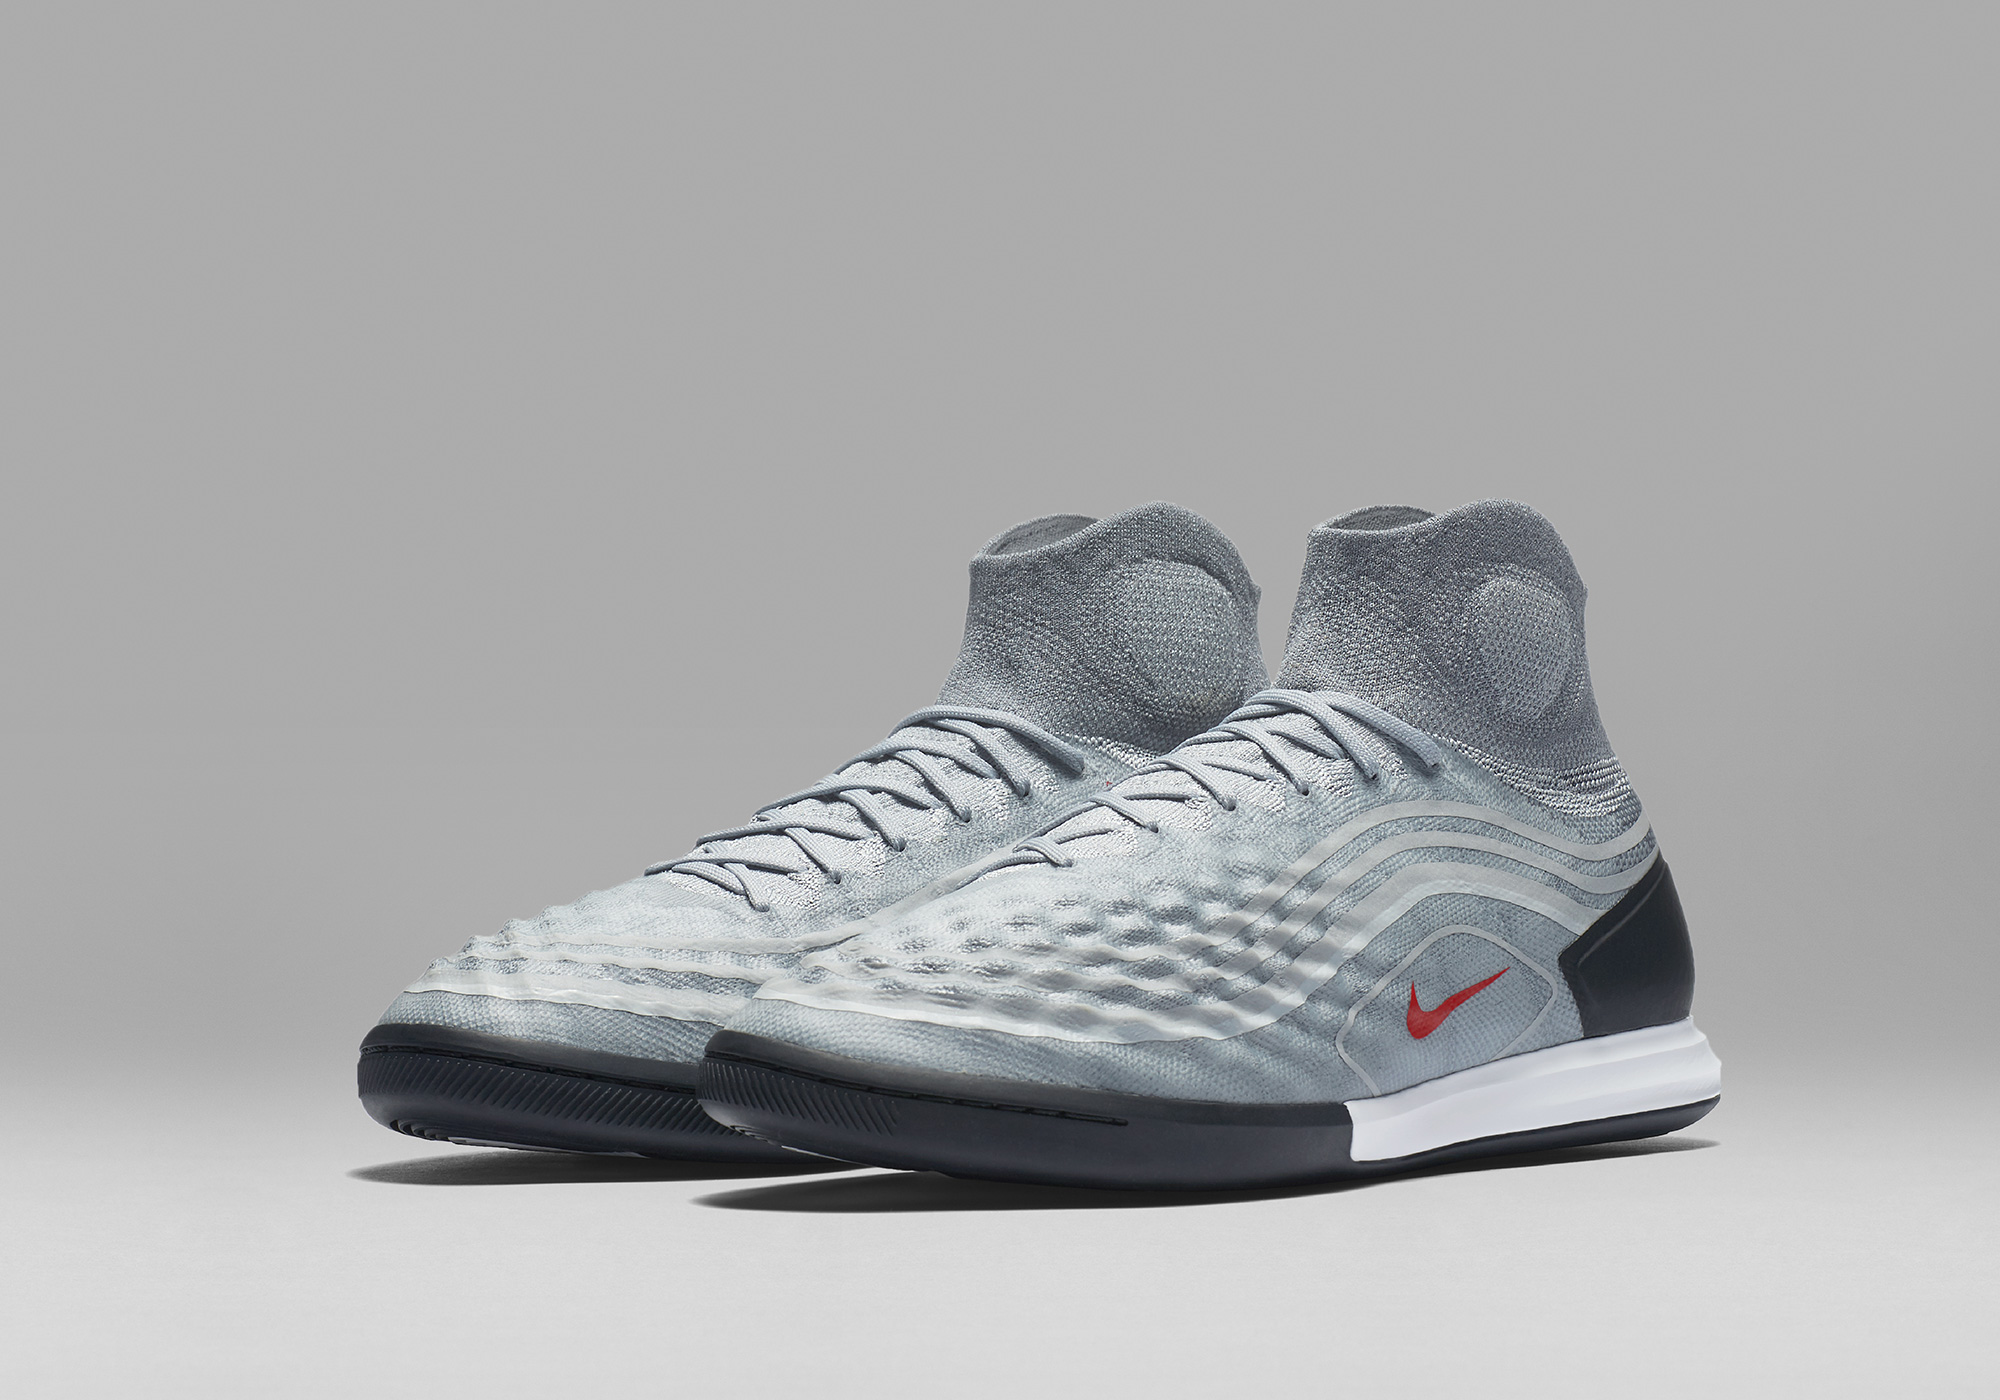 SP17_GFB_Magista_Heritage_Pack_NFX_843957-060_MagistaX_Proximo_II_IC_6_8_66870